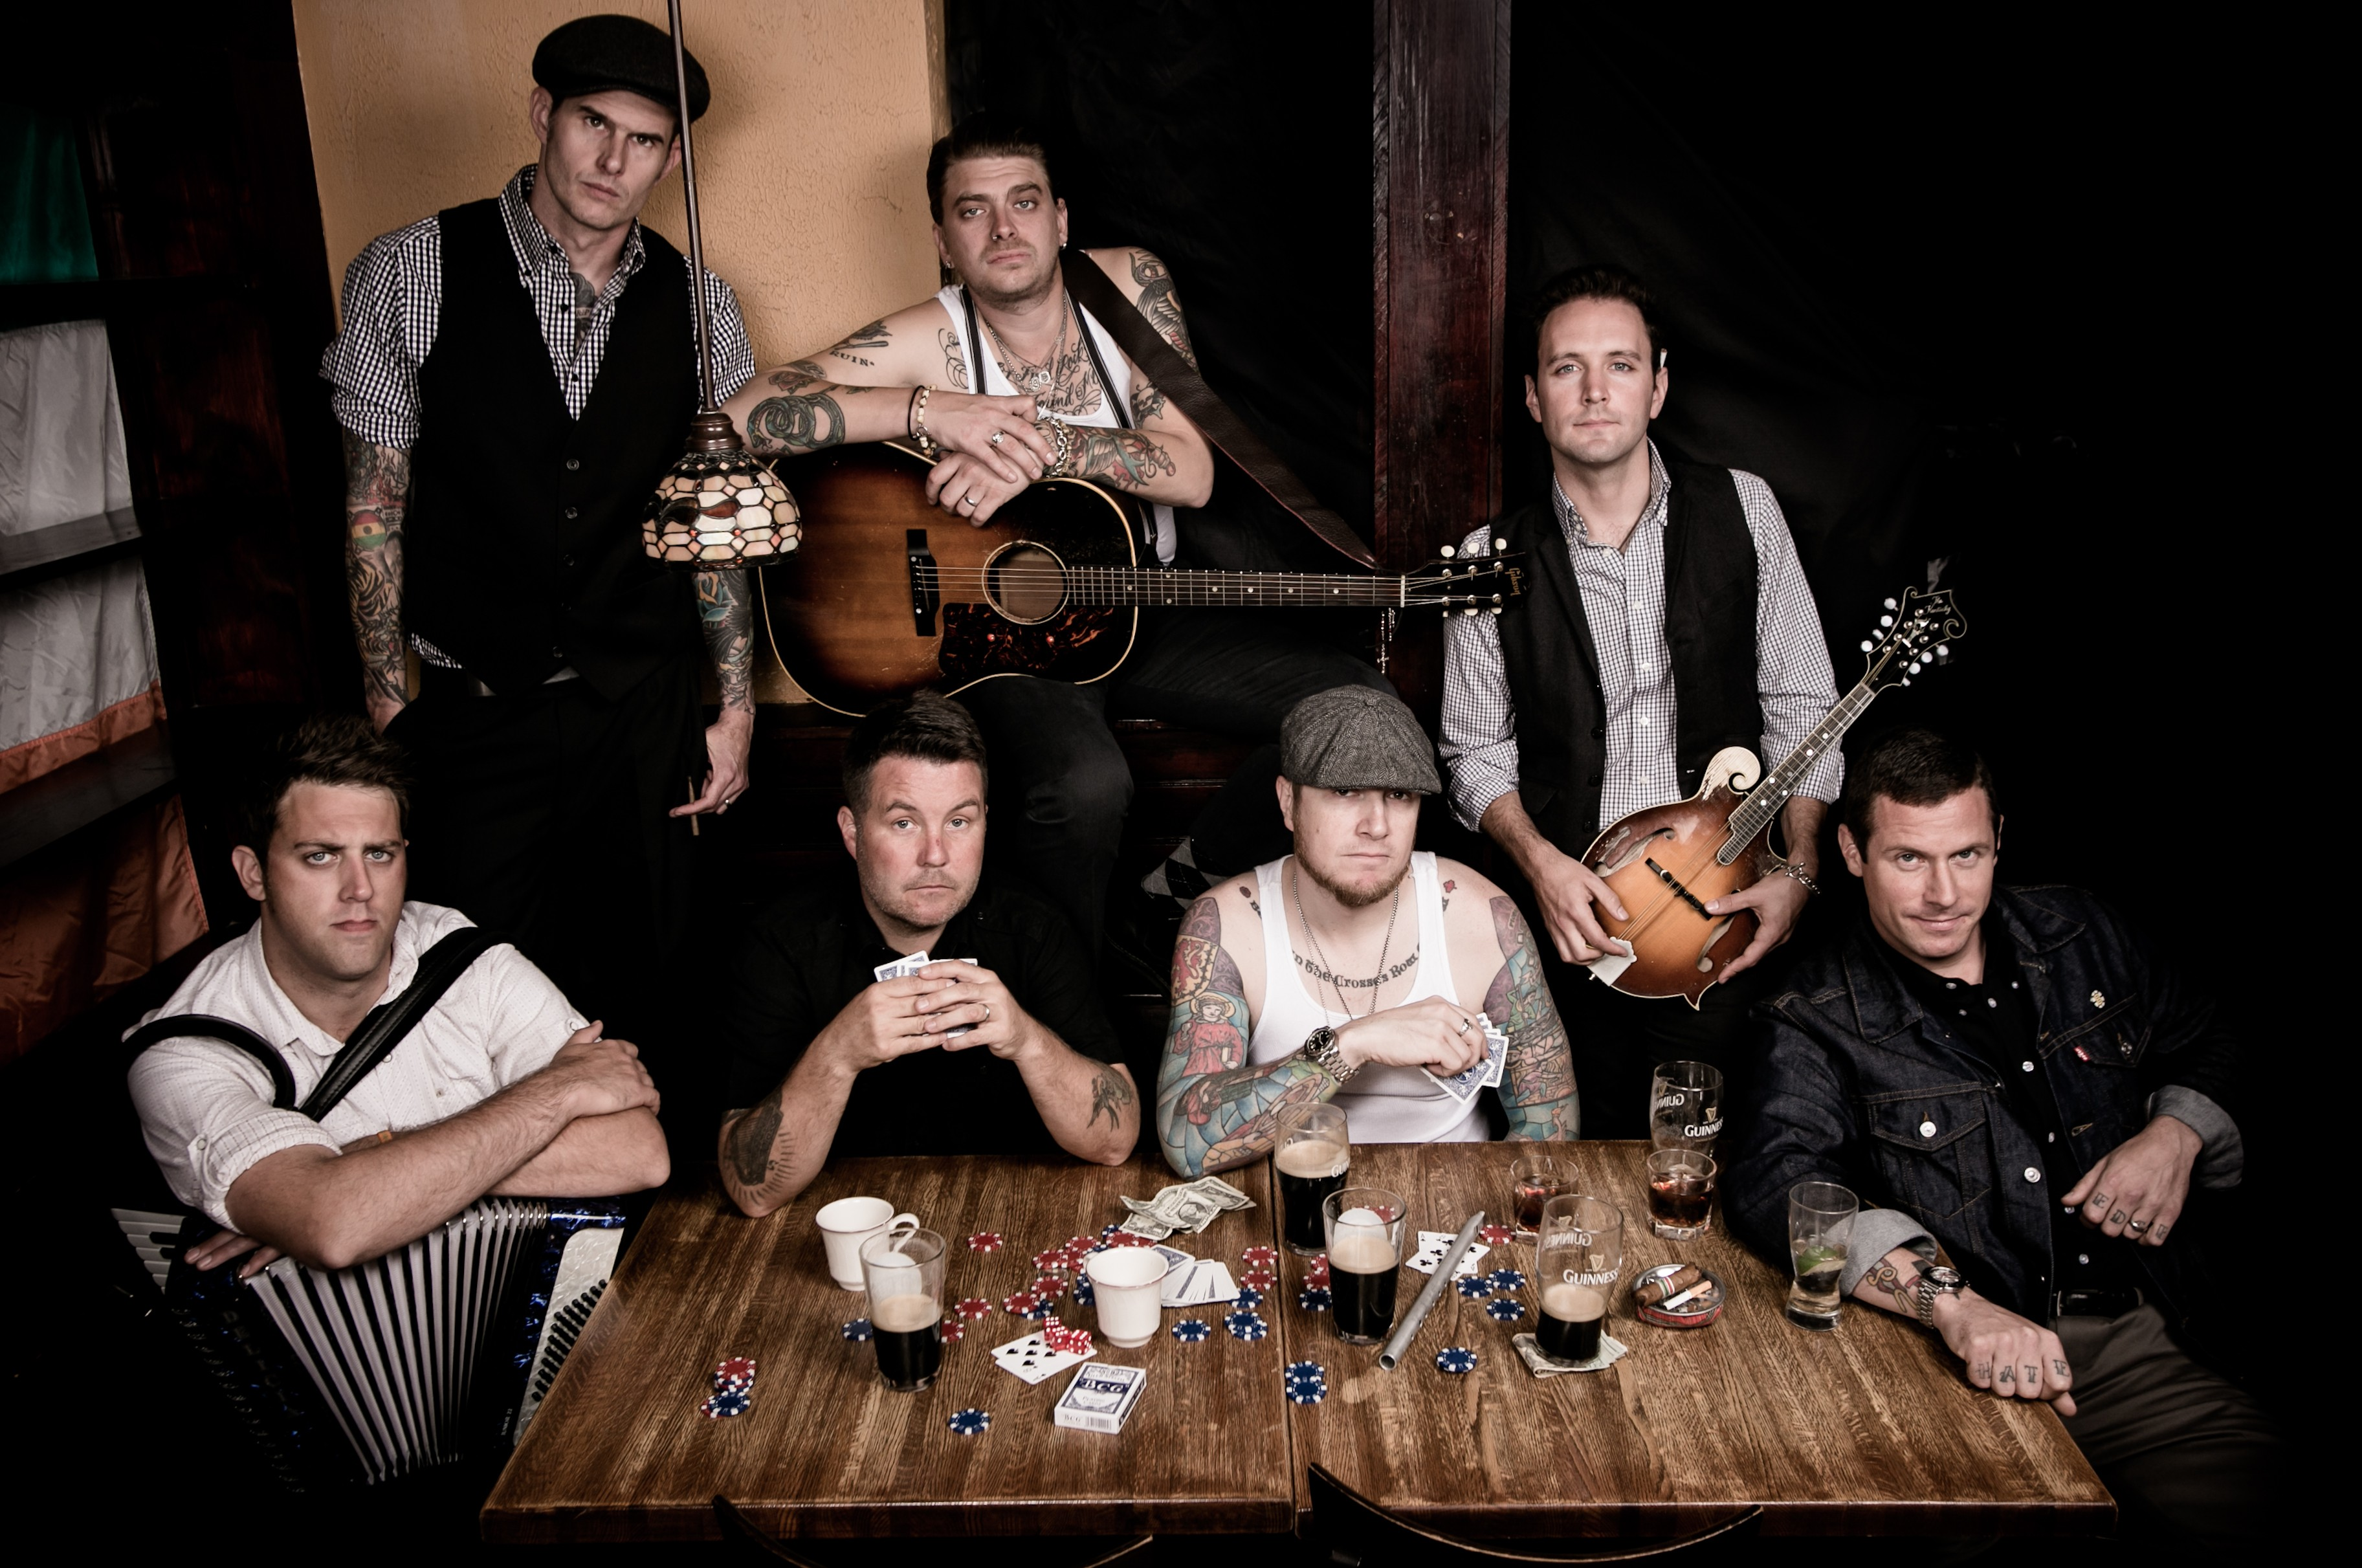 Going out in style dropkick murphys video cast